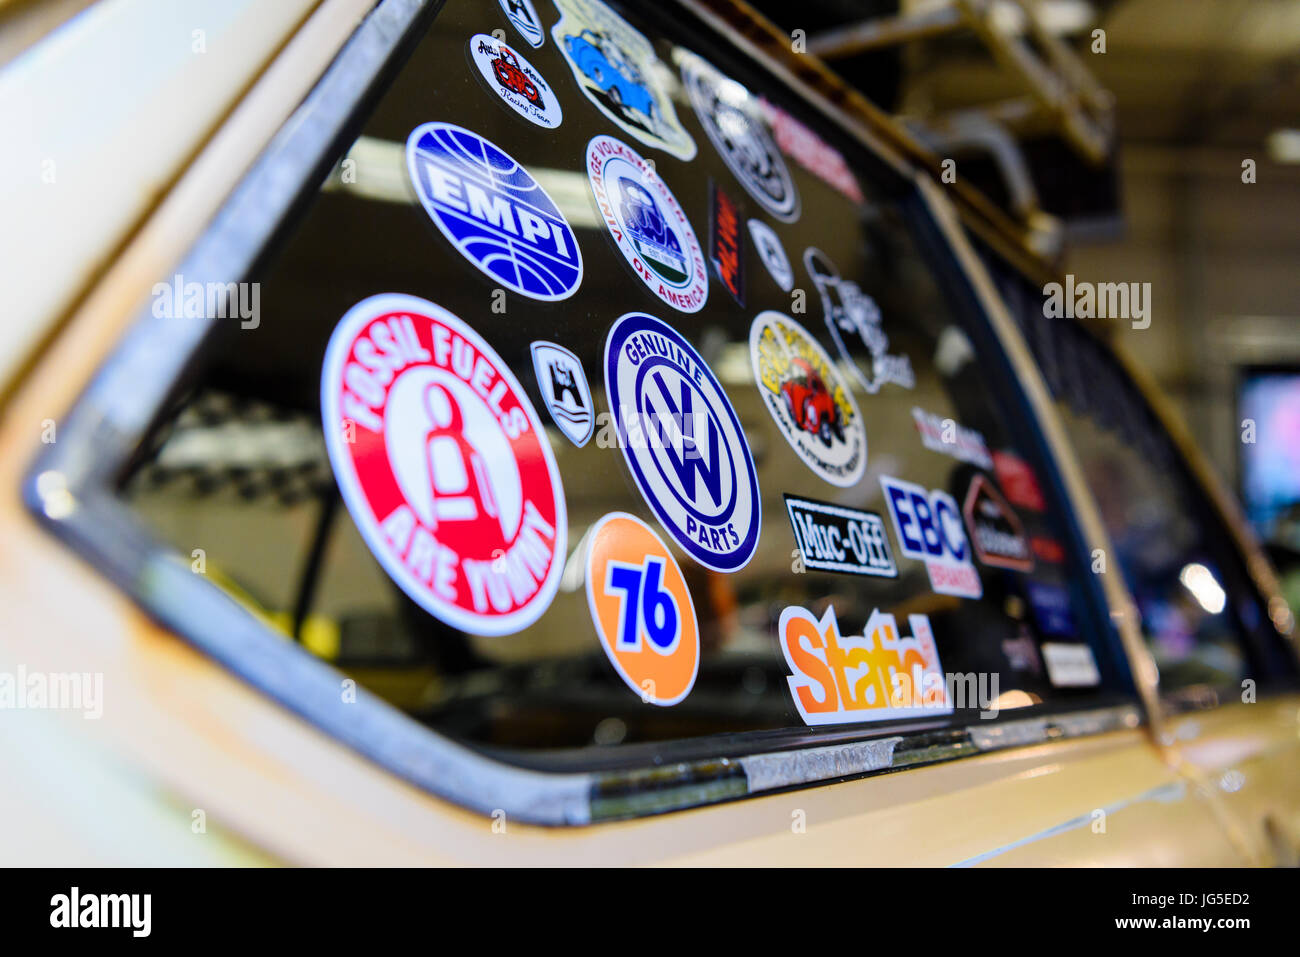 Very old volkswagen with various car stickers on the rear window from the 1970s stock